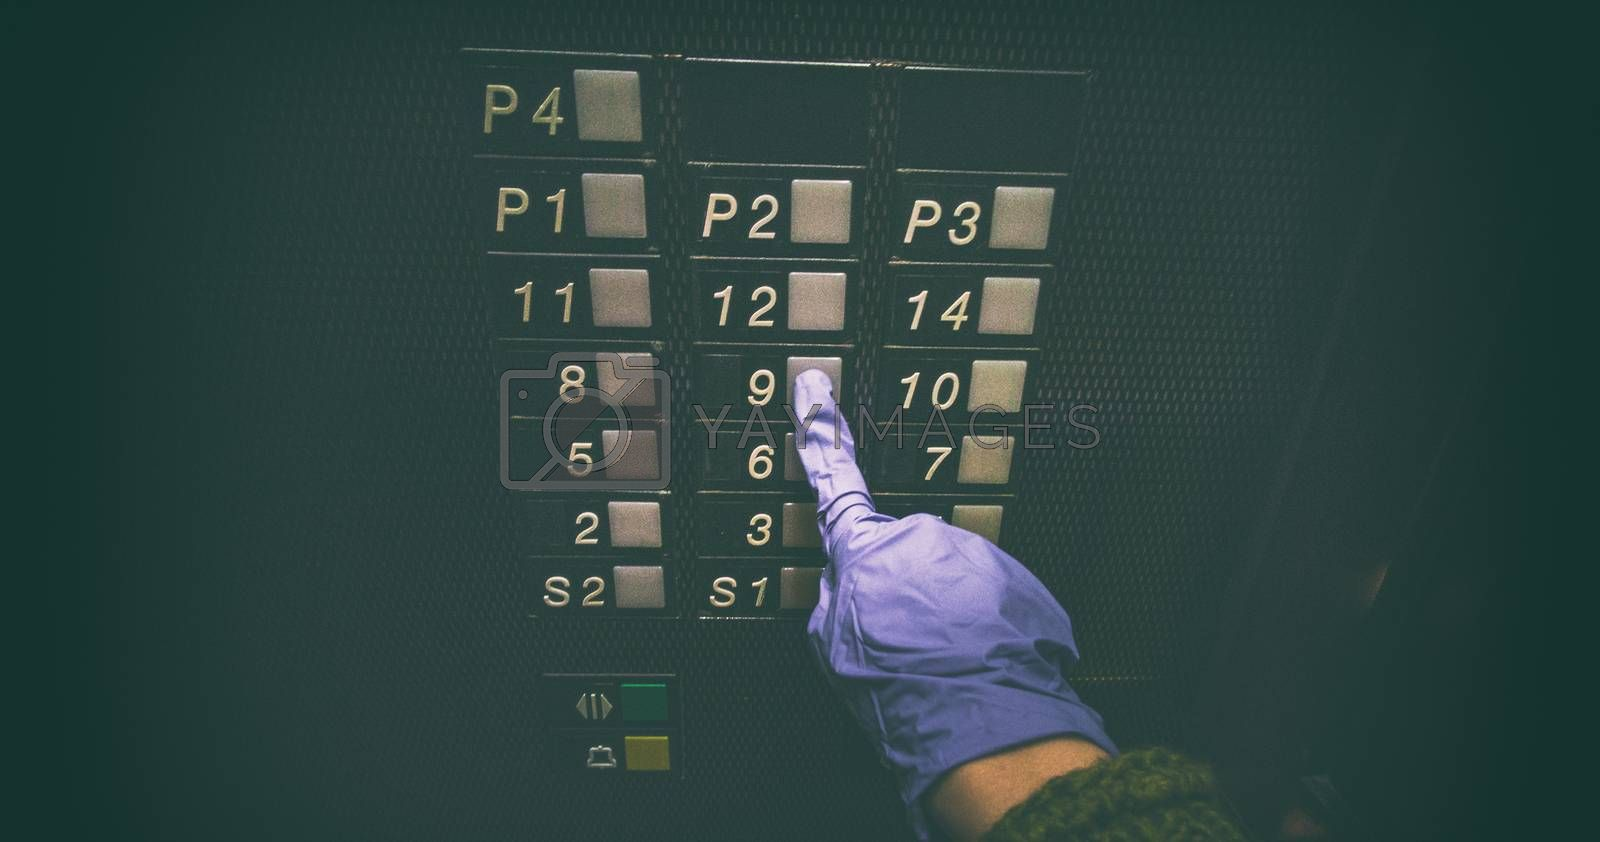 Pressing elevator button with hand wearing medical glove for hygiene, touching public surface, personal hand hygiene care for COVID-19 coronavirus prevention banner.